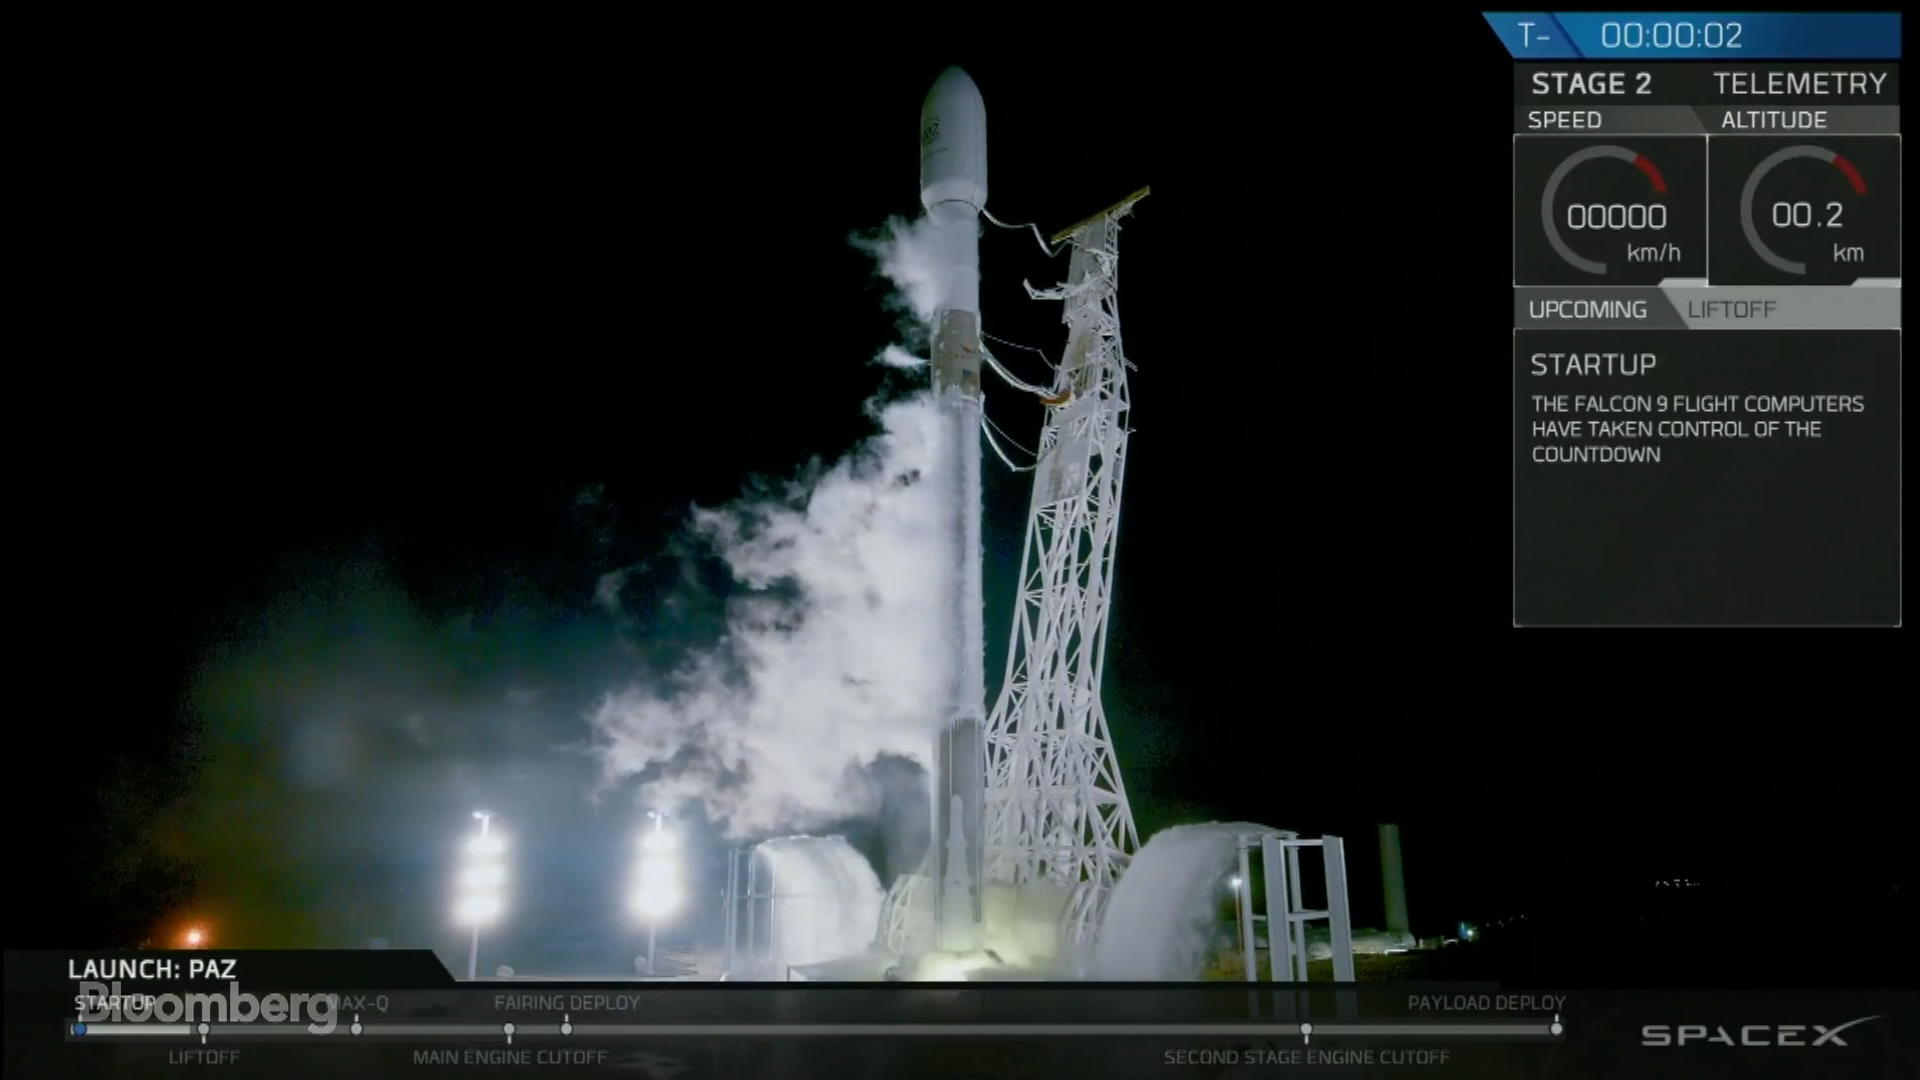 SpaceX Launches Falcon 9 Rocket Carrying Three Satellites